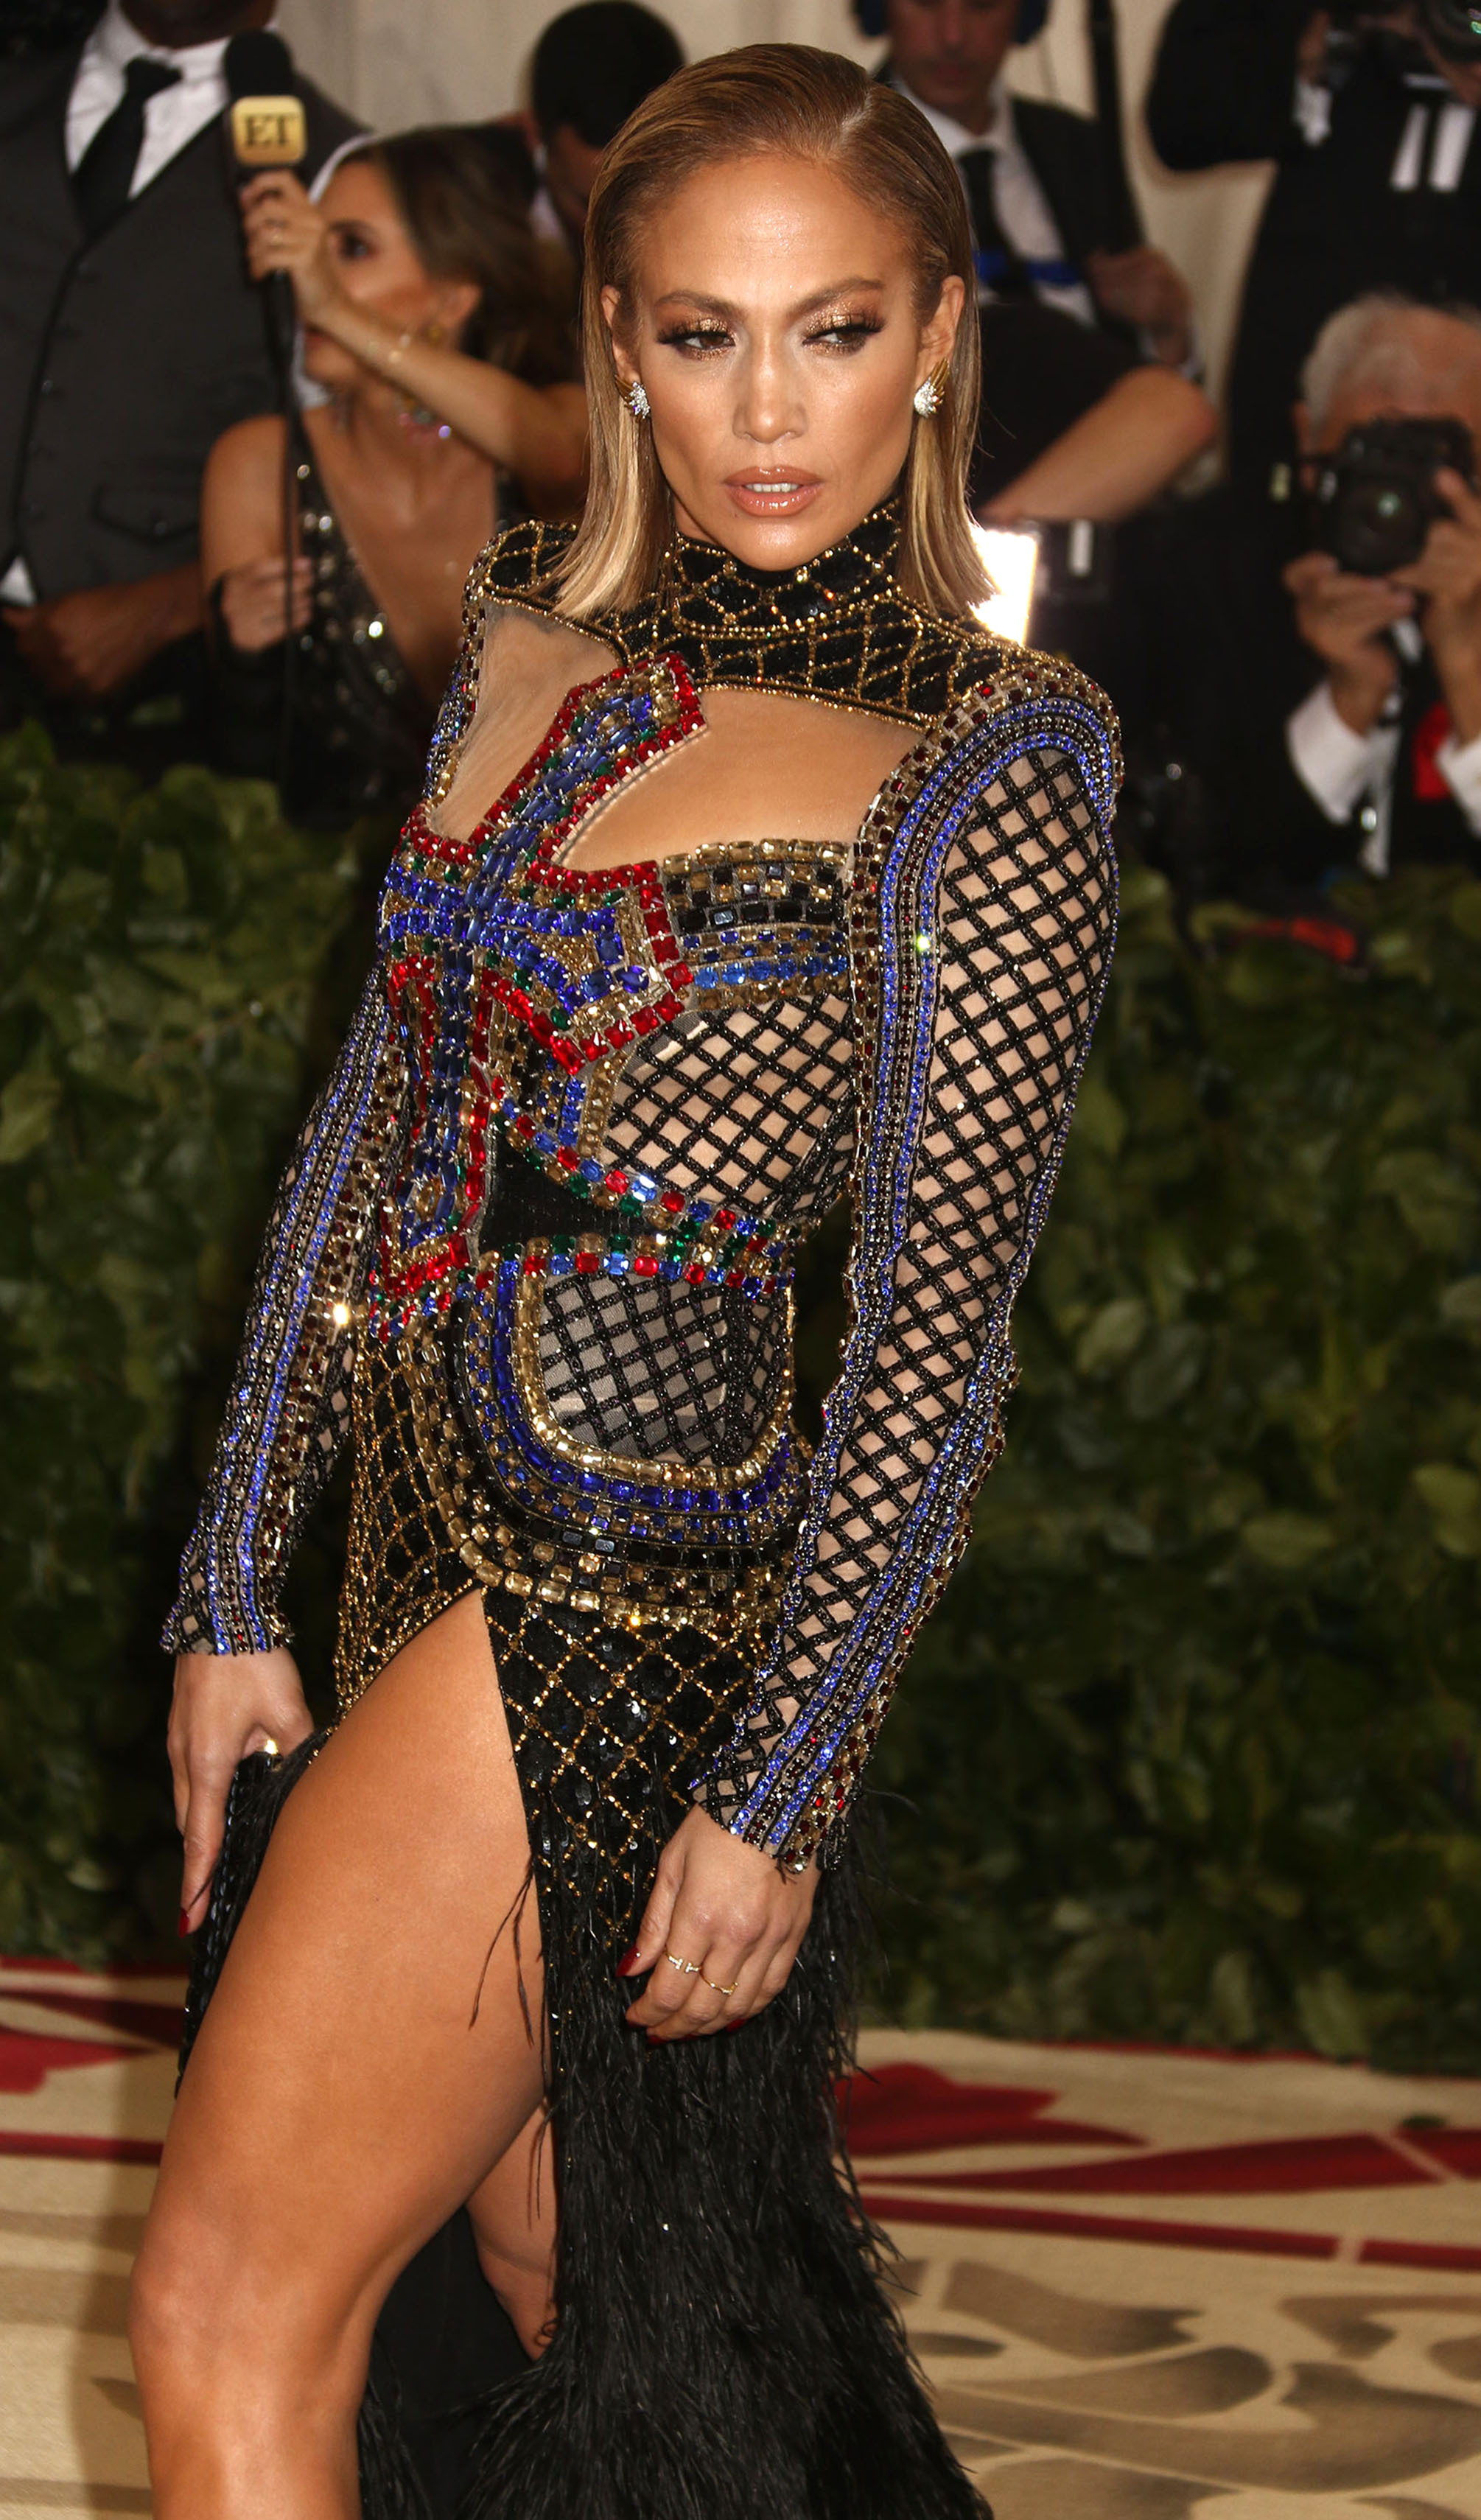 May 7, 2018 - New York City, New York, U.S. The Costume Institute Benefit celebrating the opening of Heavenly Bodies: Fashion and the Catholic Imagination exhibit held at at The Metropolitan Museum of Art <P> Pictured: JENNIFER LOPEZ <B>Ref: SPL1693835  080518  </B><BR/> Picture by: Zuma / Splash News<BR/> </P><P> <B>Splash News and Pictures</B><BR/> Los Angeles:310-821-2666<BR/> New York:212-619-2666<BR/> London:870-934-2666<BR/> <span id=